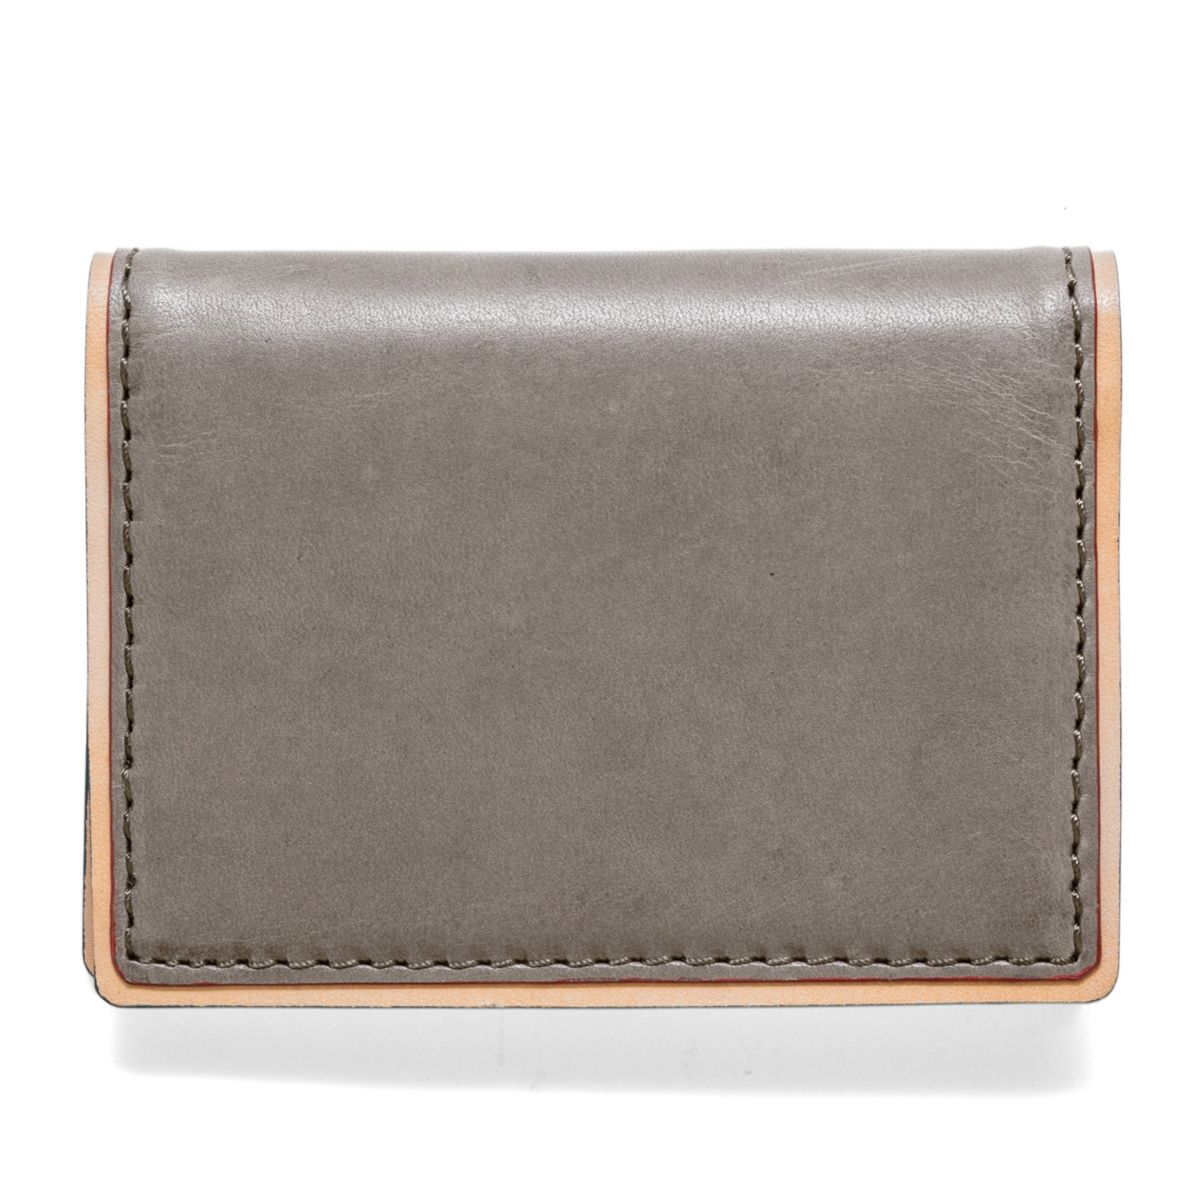 DUOTONE Folding Carrier Leather Wallet - Grey